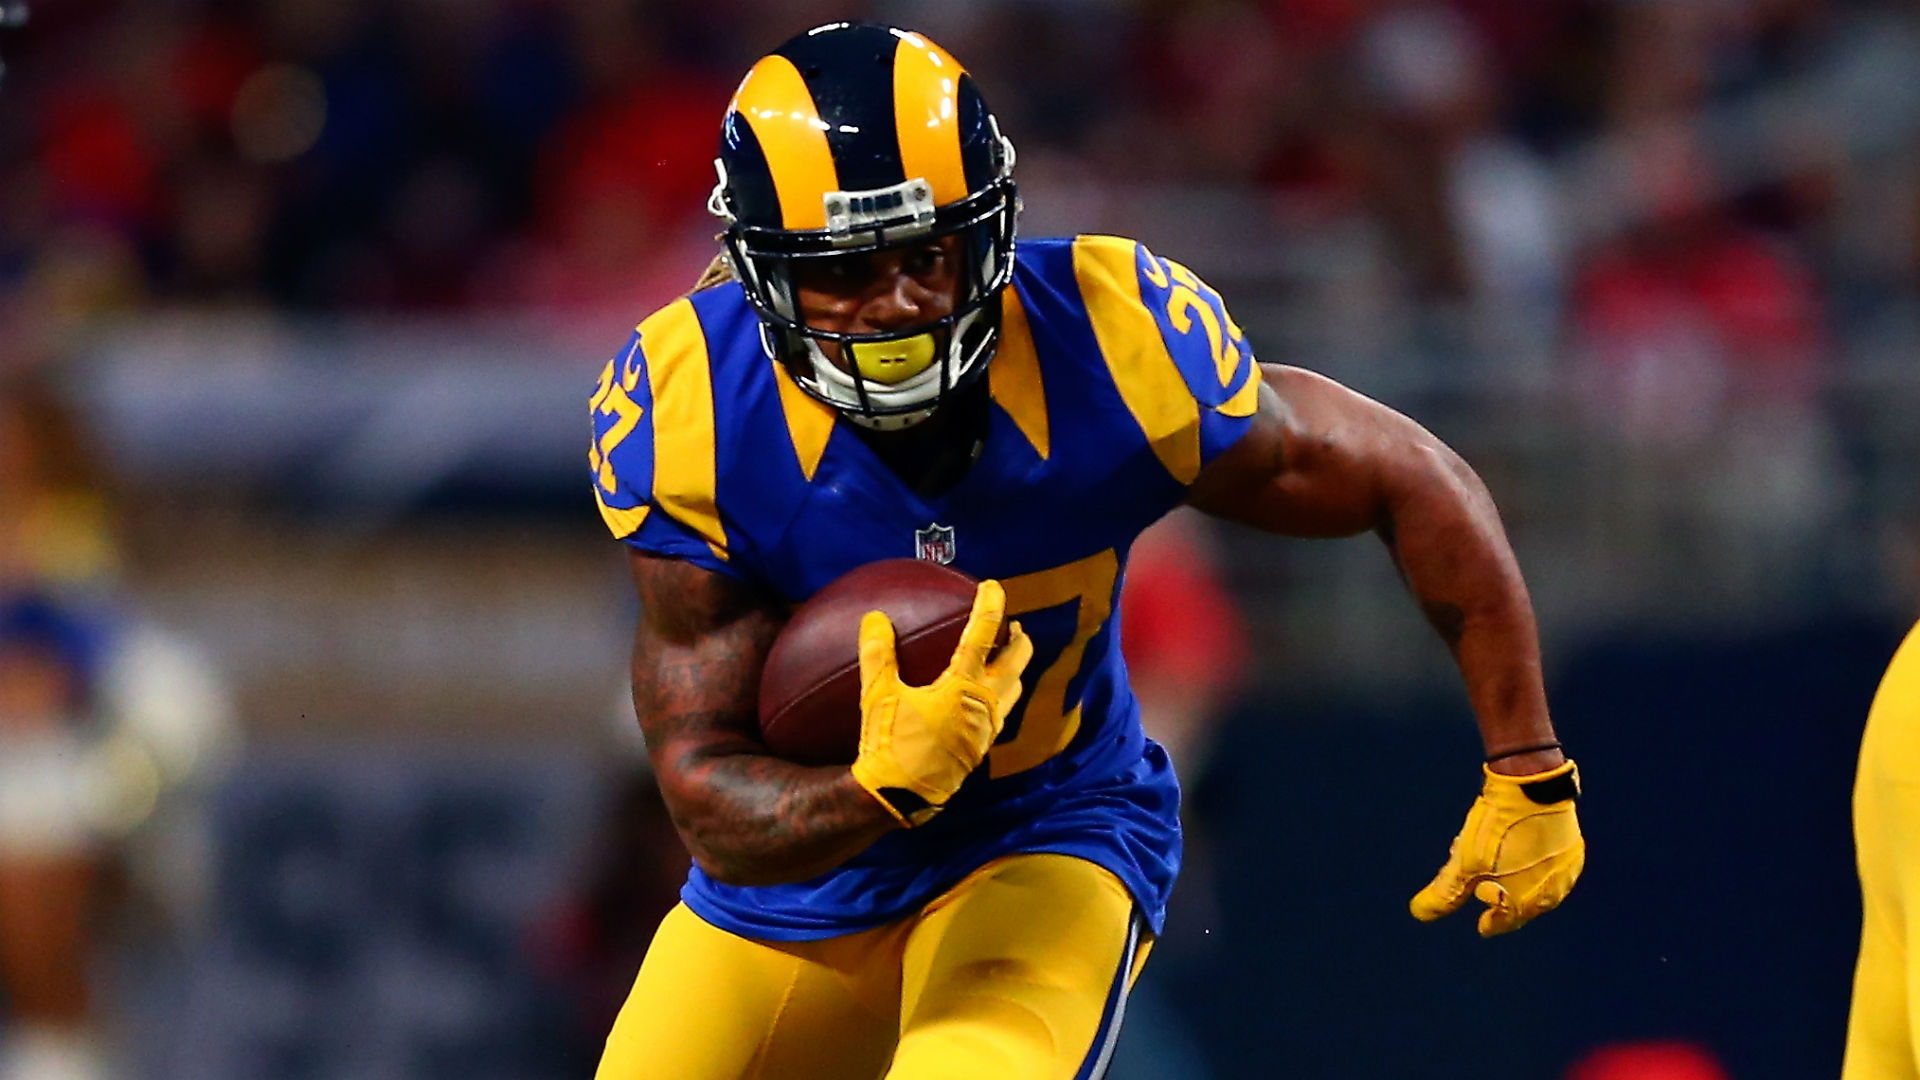 Rams Tre Mason Isaiah Battle Miss Team Bus Jeff Fisher Throws Them Under It